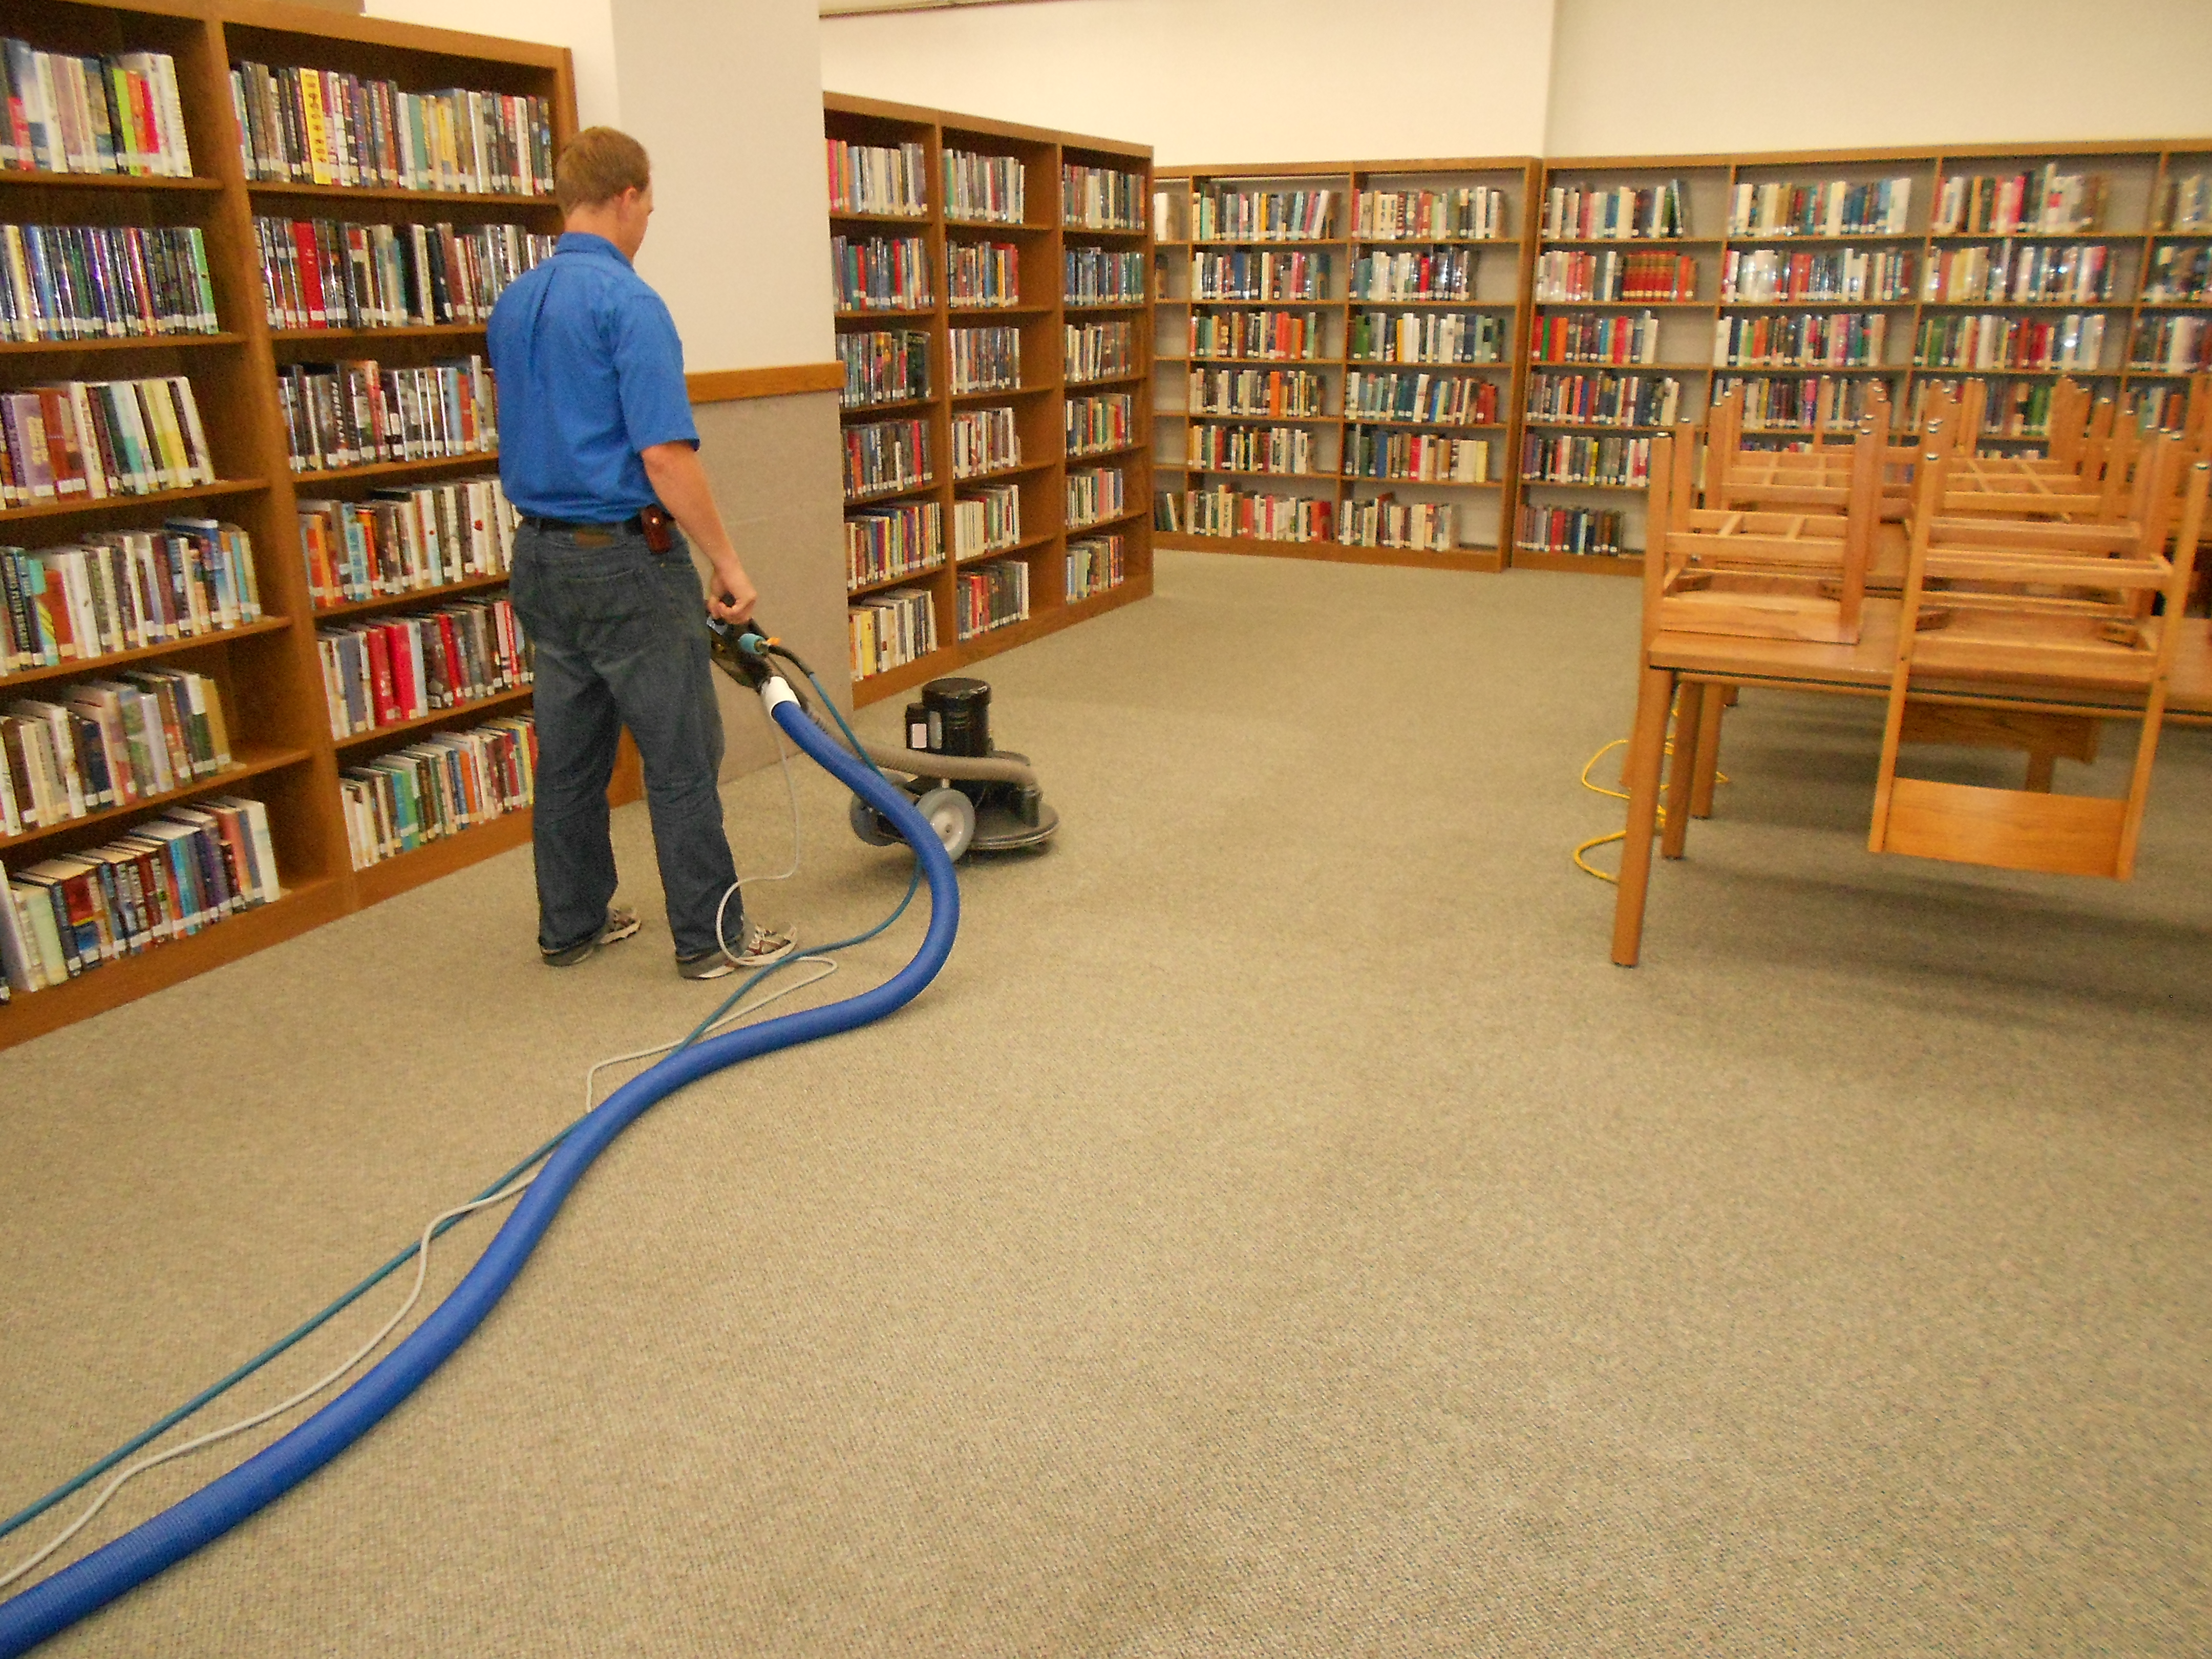 4 Reasons to Hire a Commercial Carpet Cleaning Service in Chandler